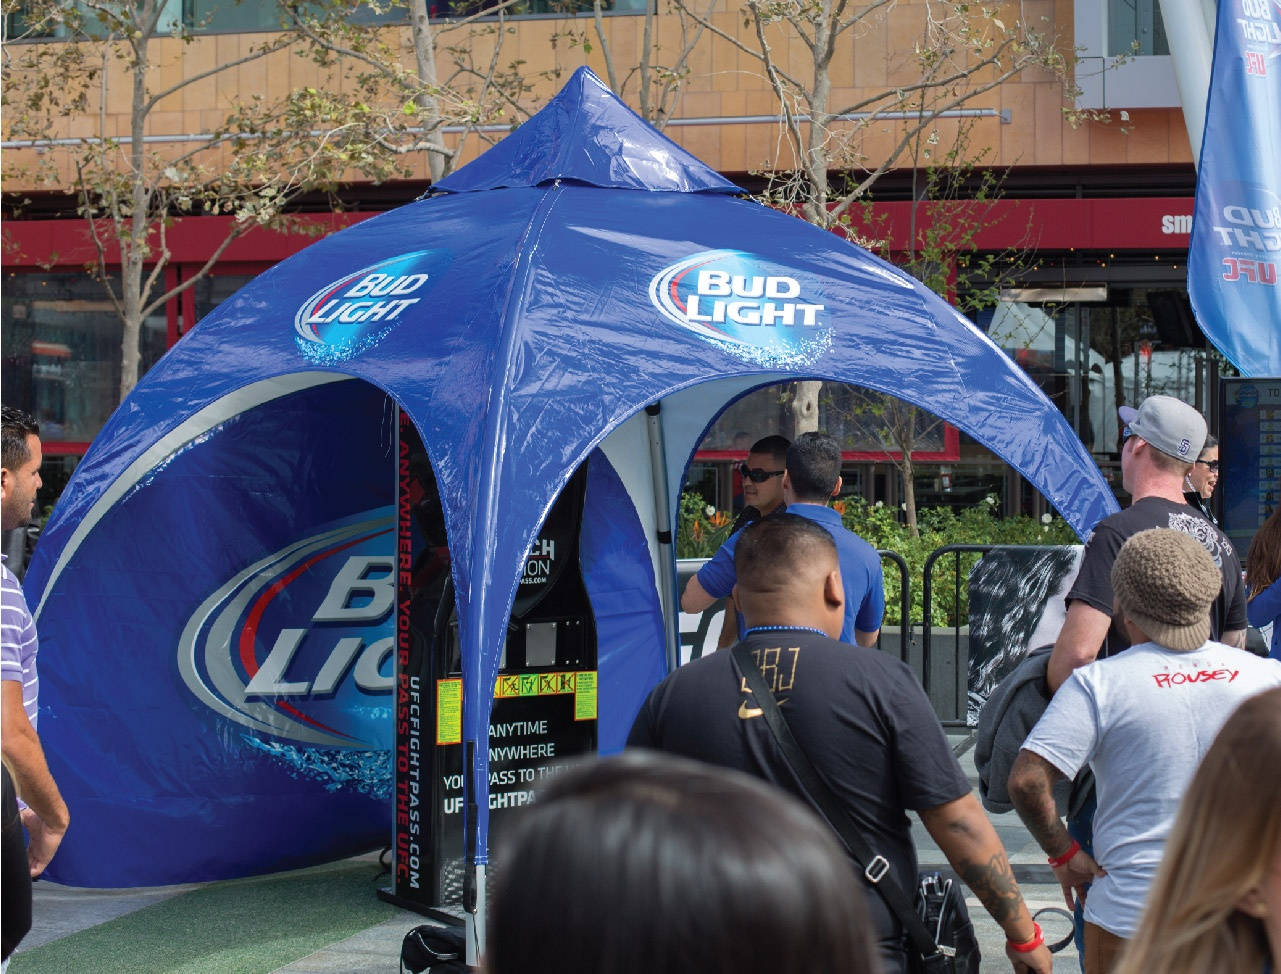 Bud Light Printed Arch Tent at Event